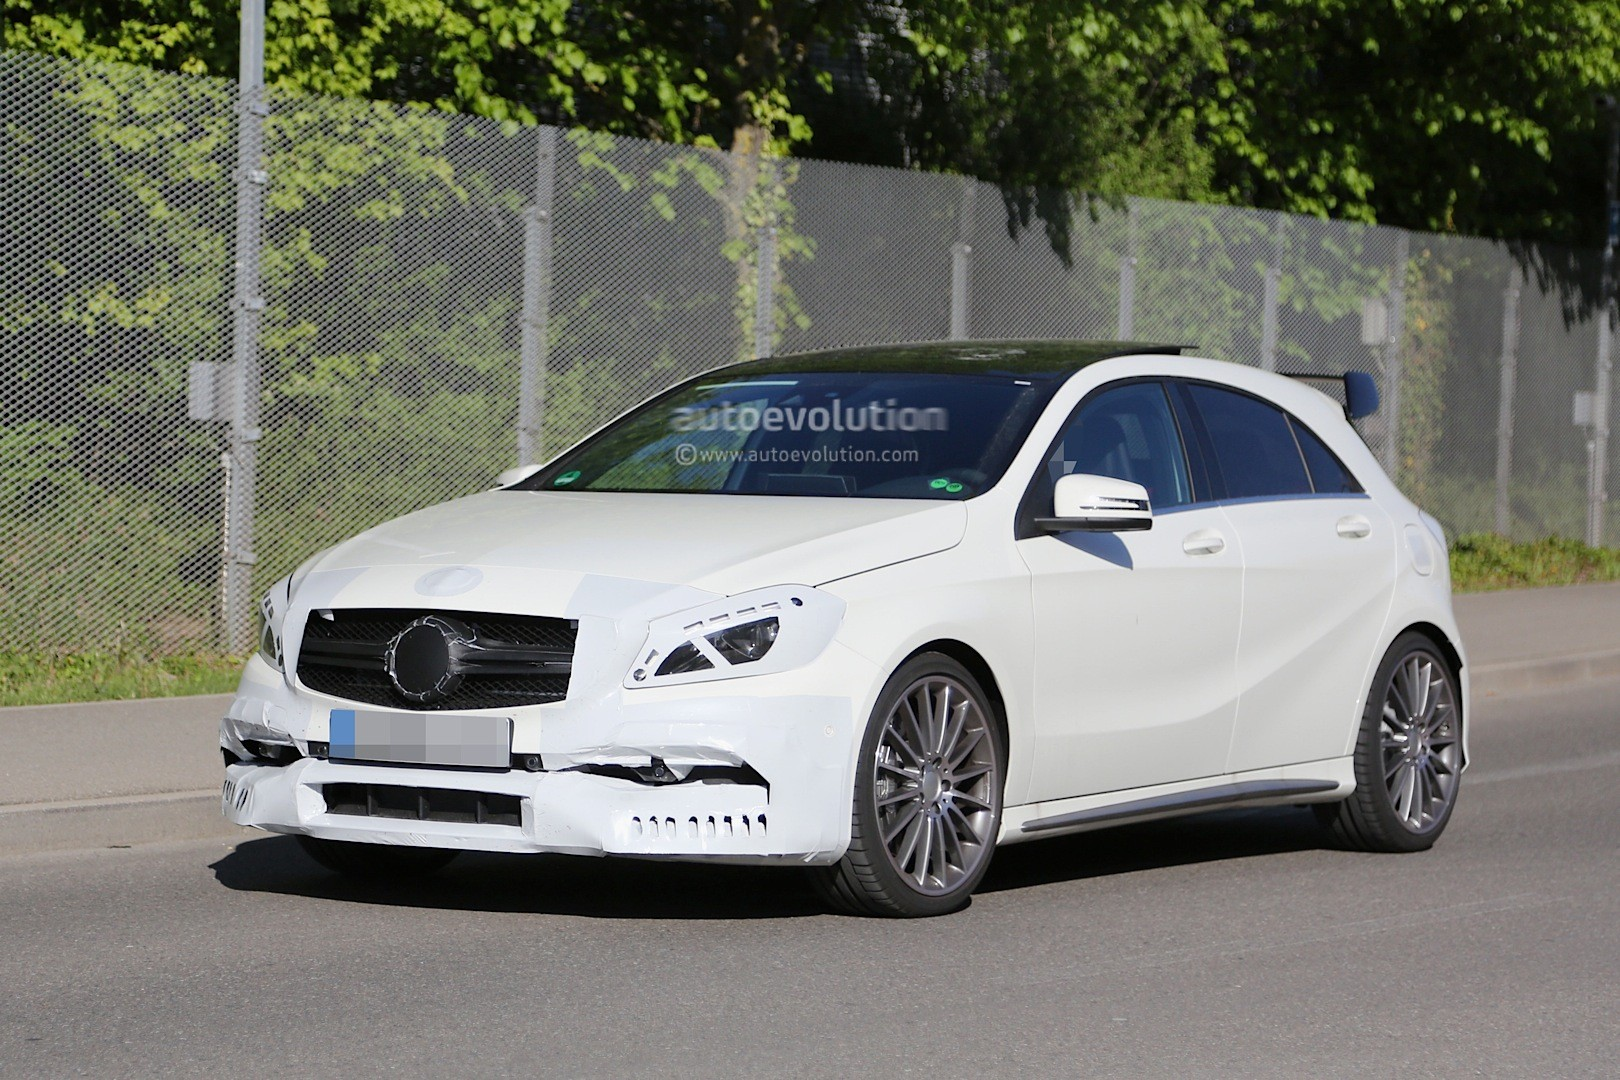 2016 mercedes a45 amg facelift spied with minimal disguise more aggressive design autoevolution. Black Bedroom Furniture Sets. Home Design Ideas